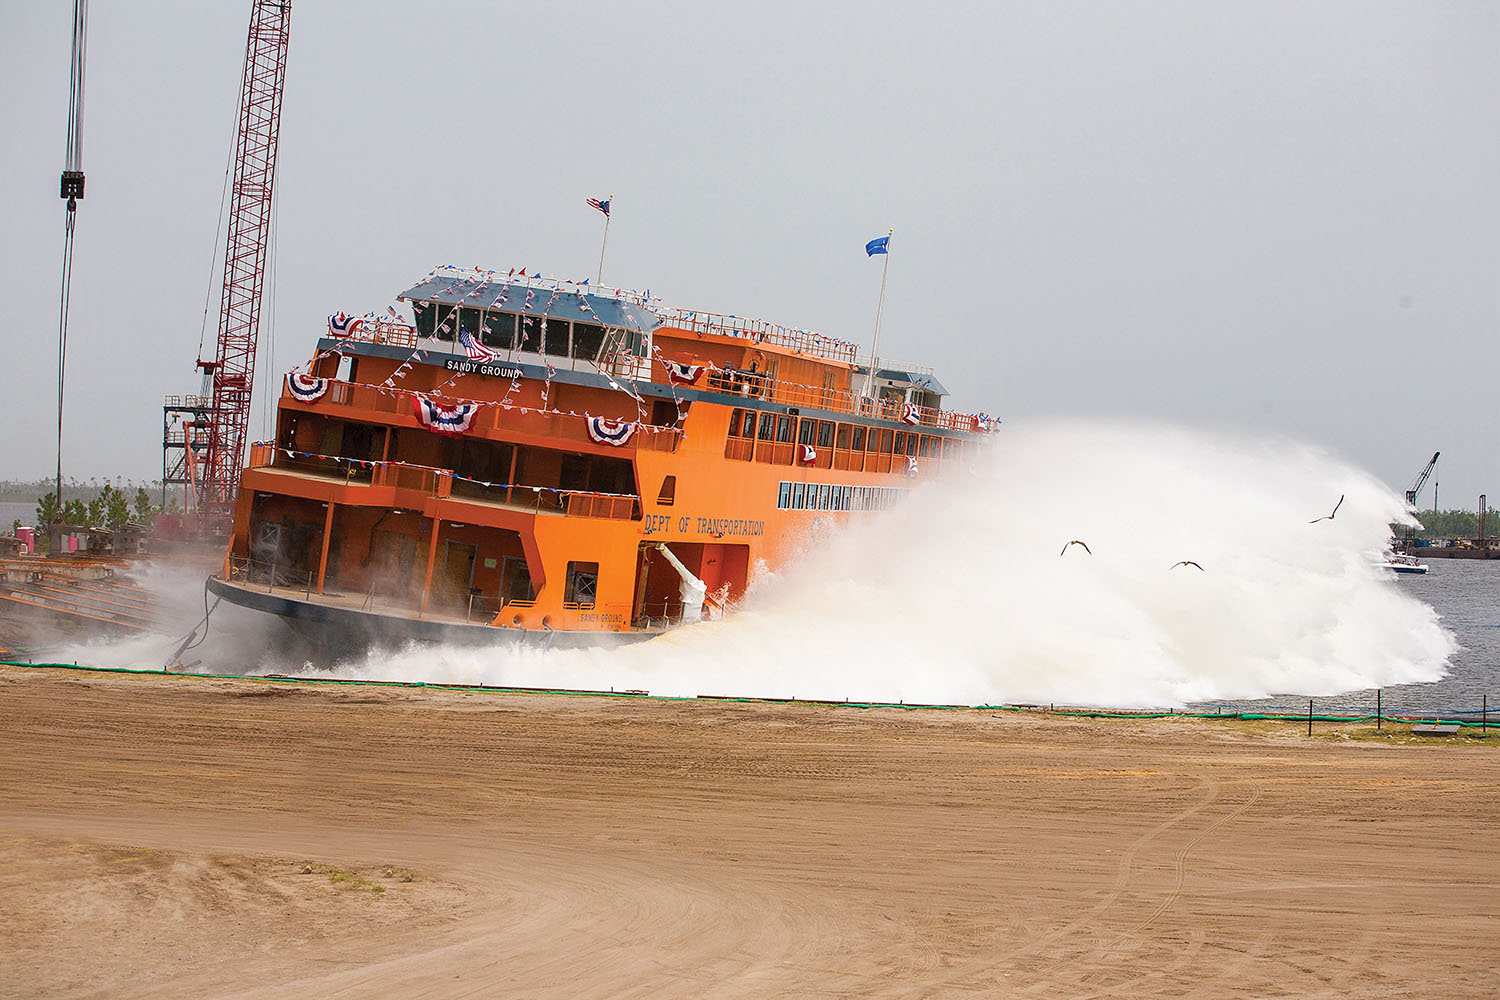 The ferry Sandy Ground splashes into the water at Eastern Shipbuilding's Allanton, Fla., shipyard. (Photo courtesy of Eastern Shipbuilding Group)